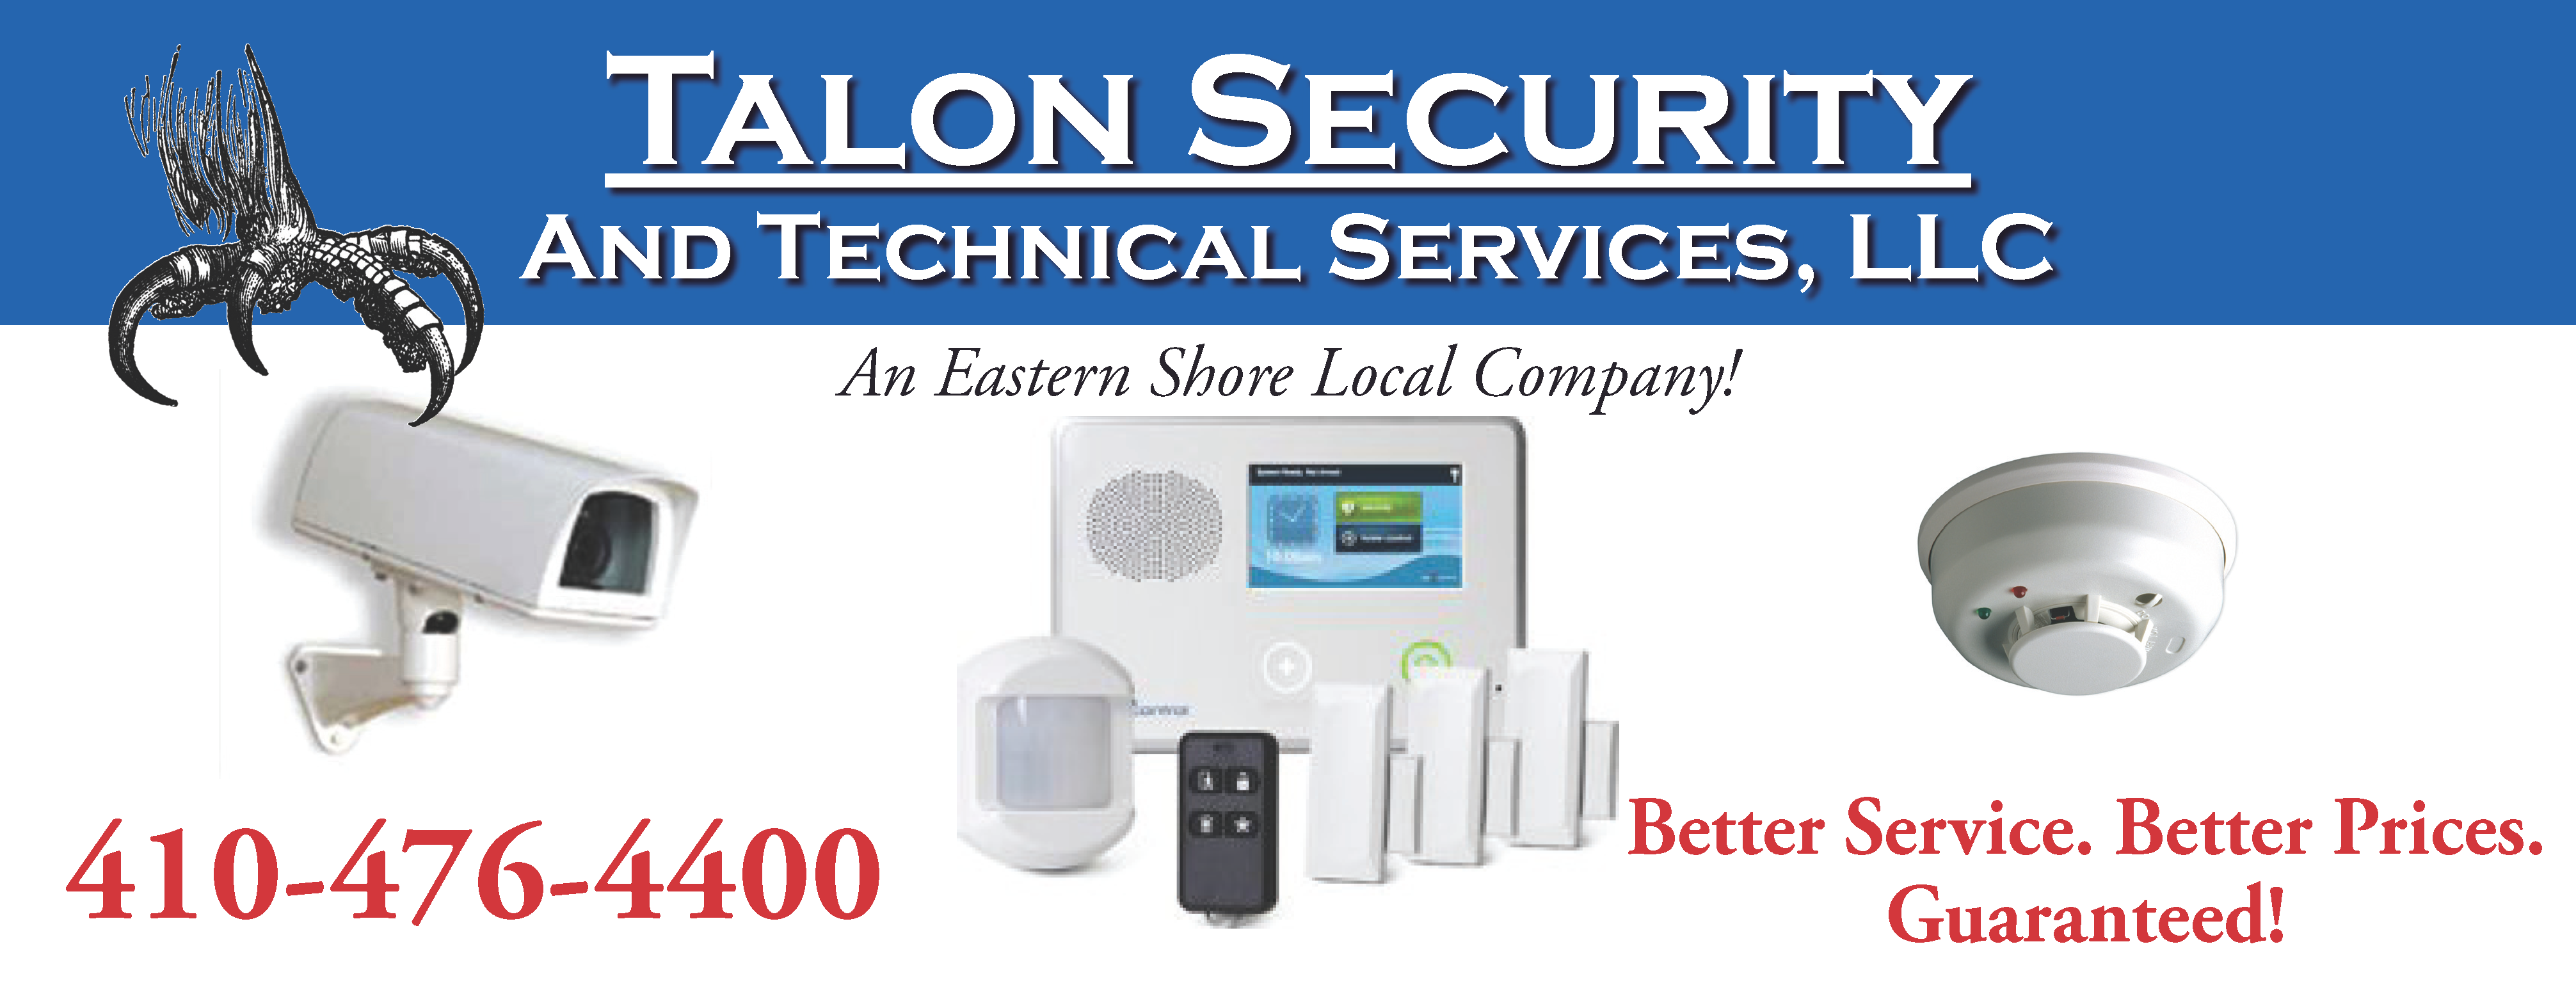 Talon Security